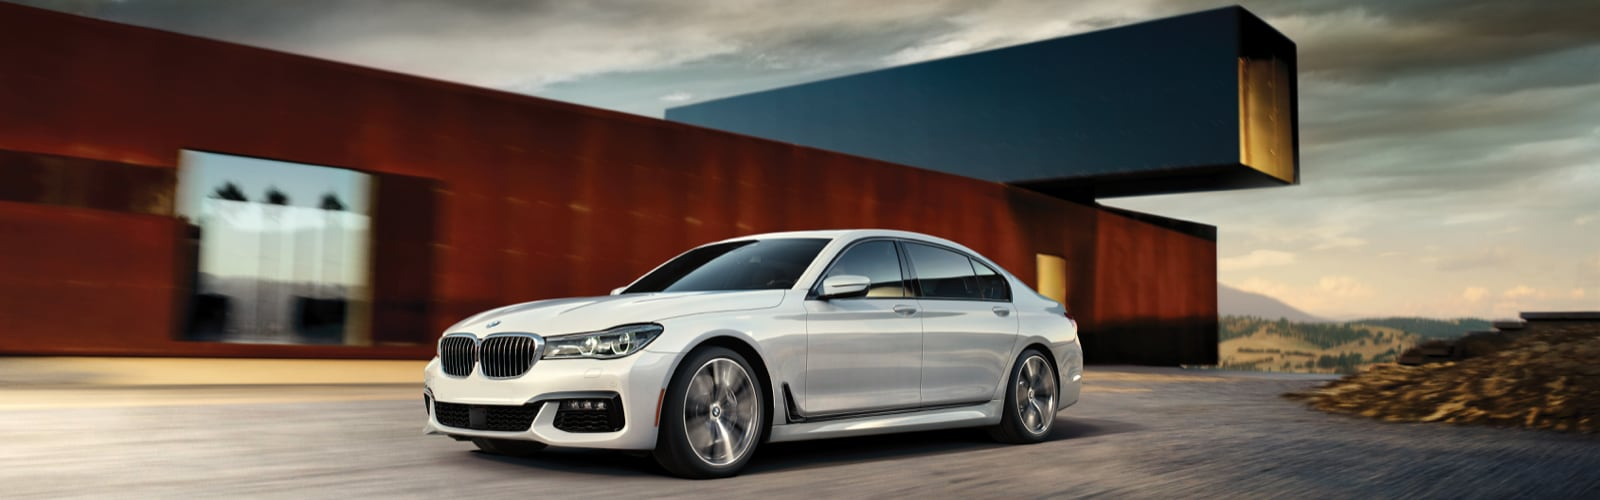 BMW 7 series lease deals Image